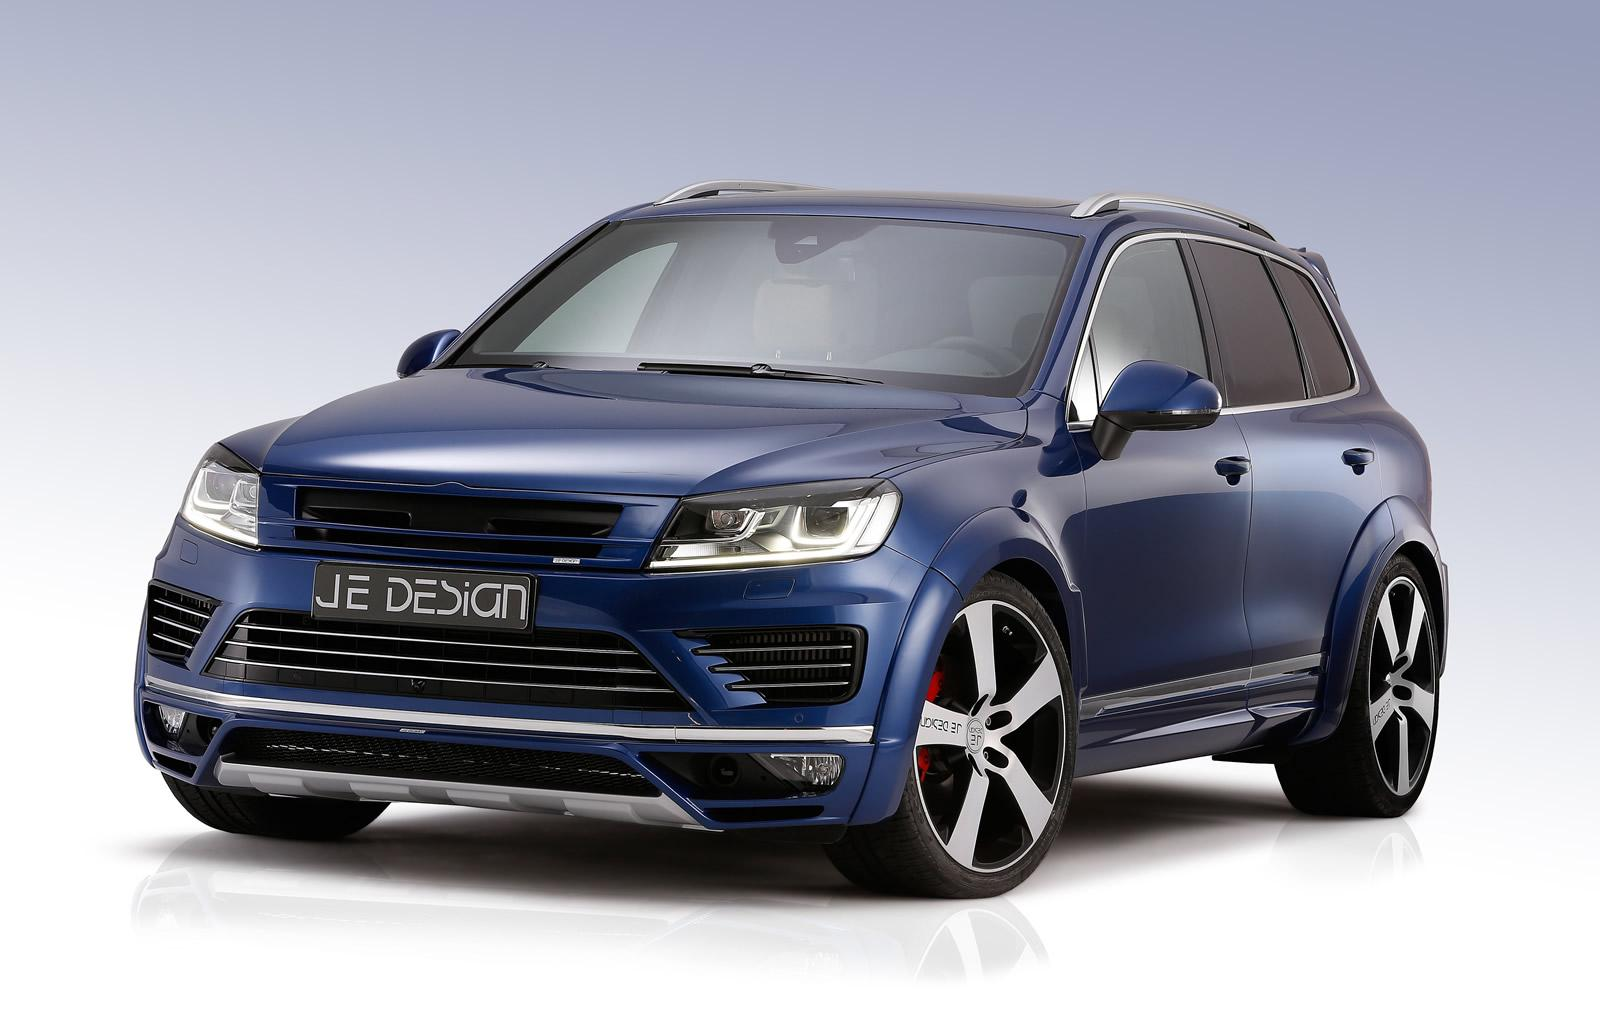 2015 volkswagen touareg facelift tuned by je design gets 410 hp of diesel power autoevolution. Black Bedroom Furniture Sets. Home Design Ideas